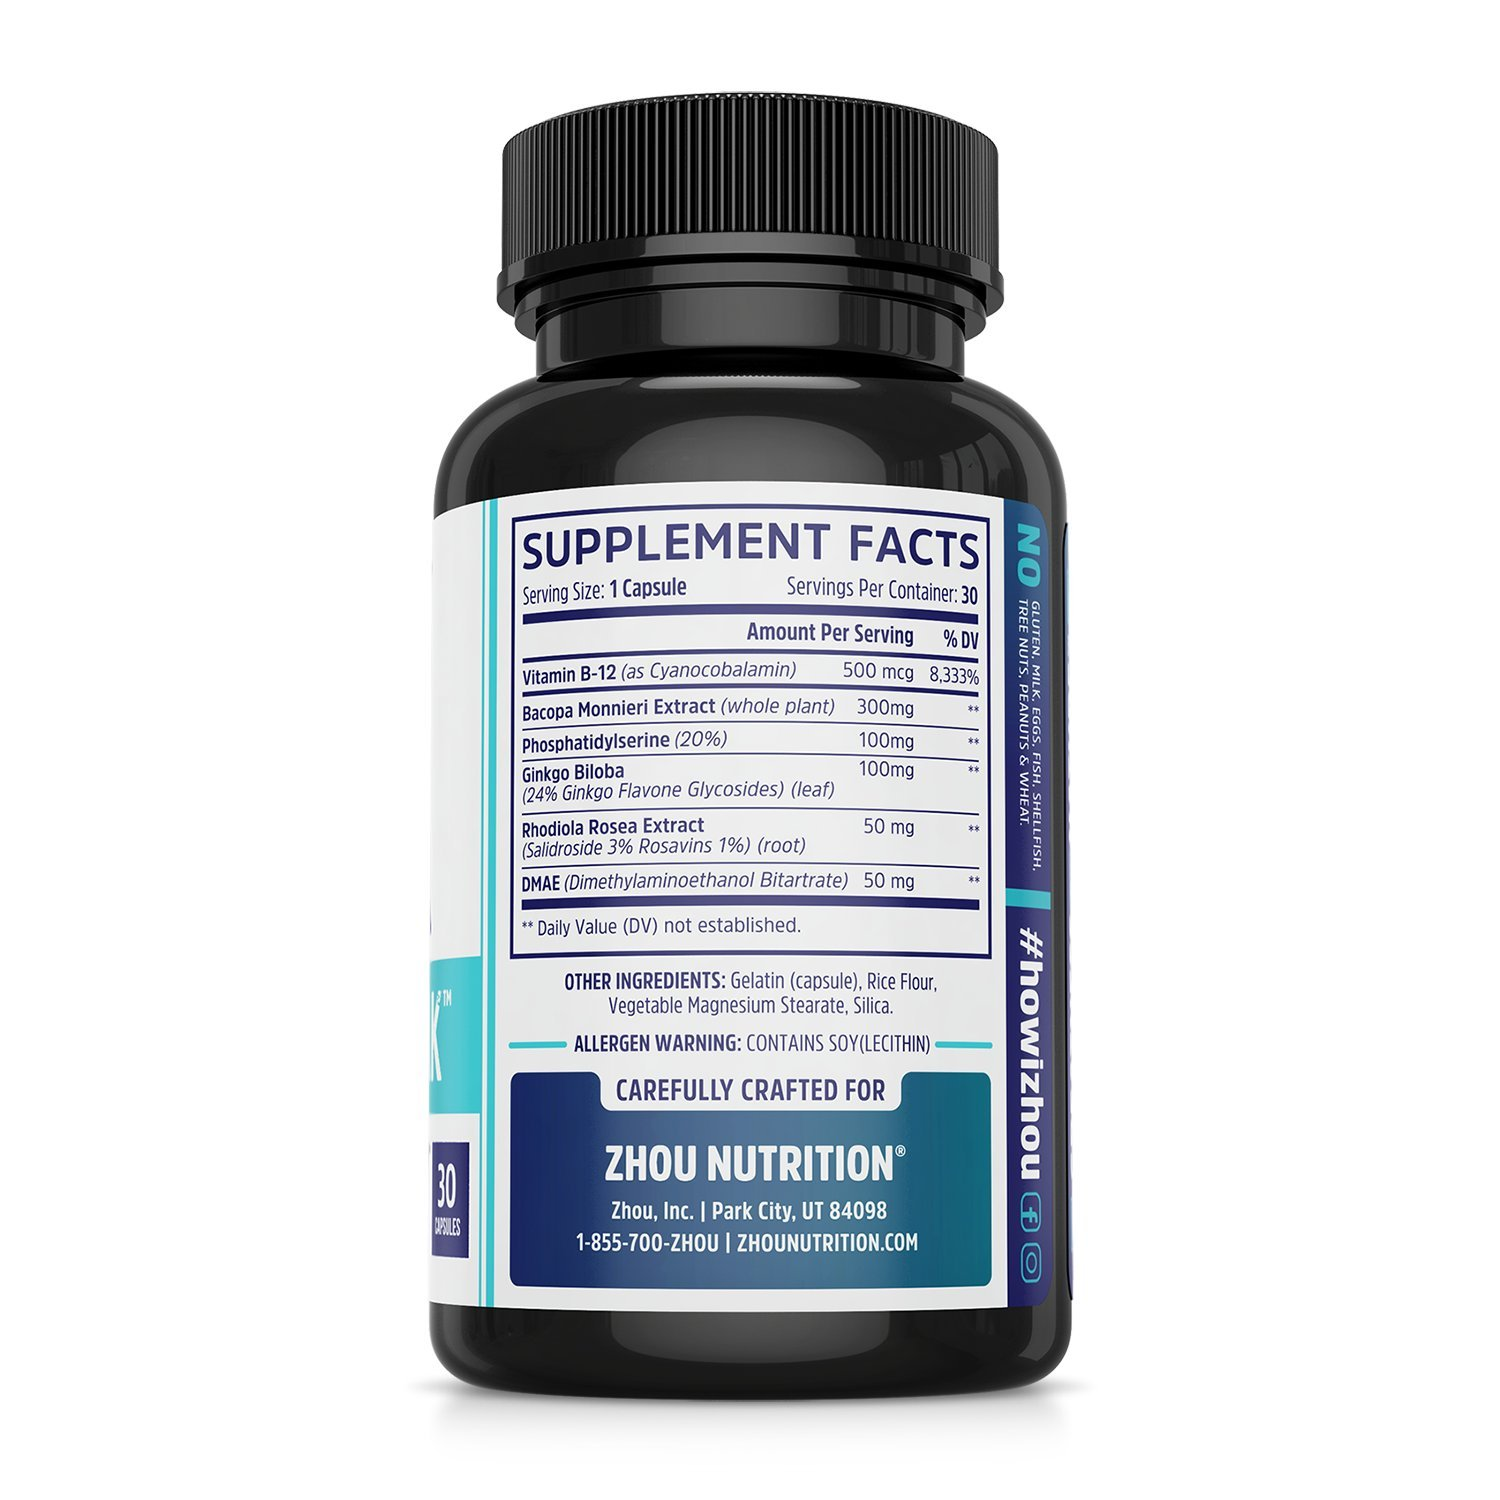 Neuro-Peak Brain Support Supplement, Nootropic Formulated for Memory, Focus, Clarity, 30 Capsules by Zhou Nutrition (Image #3)